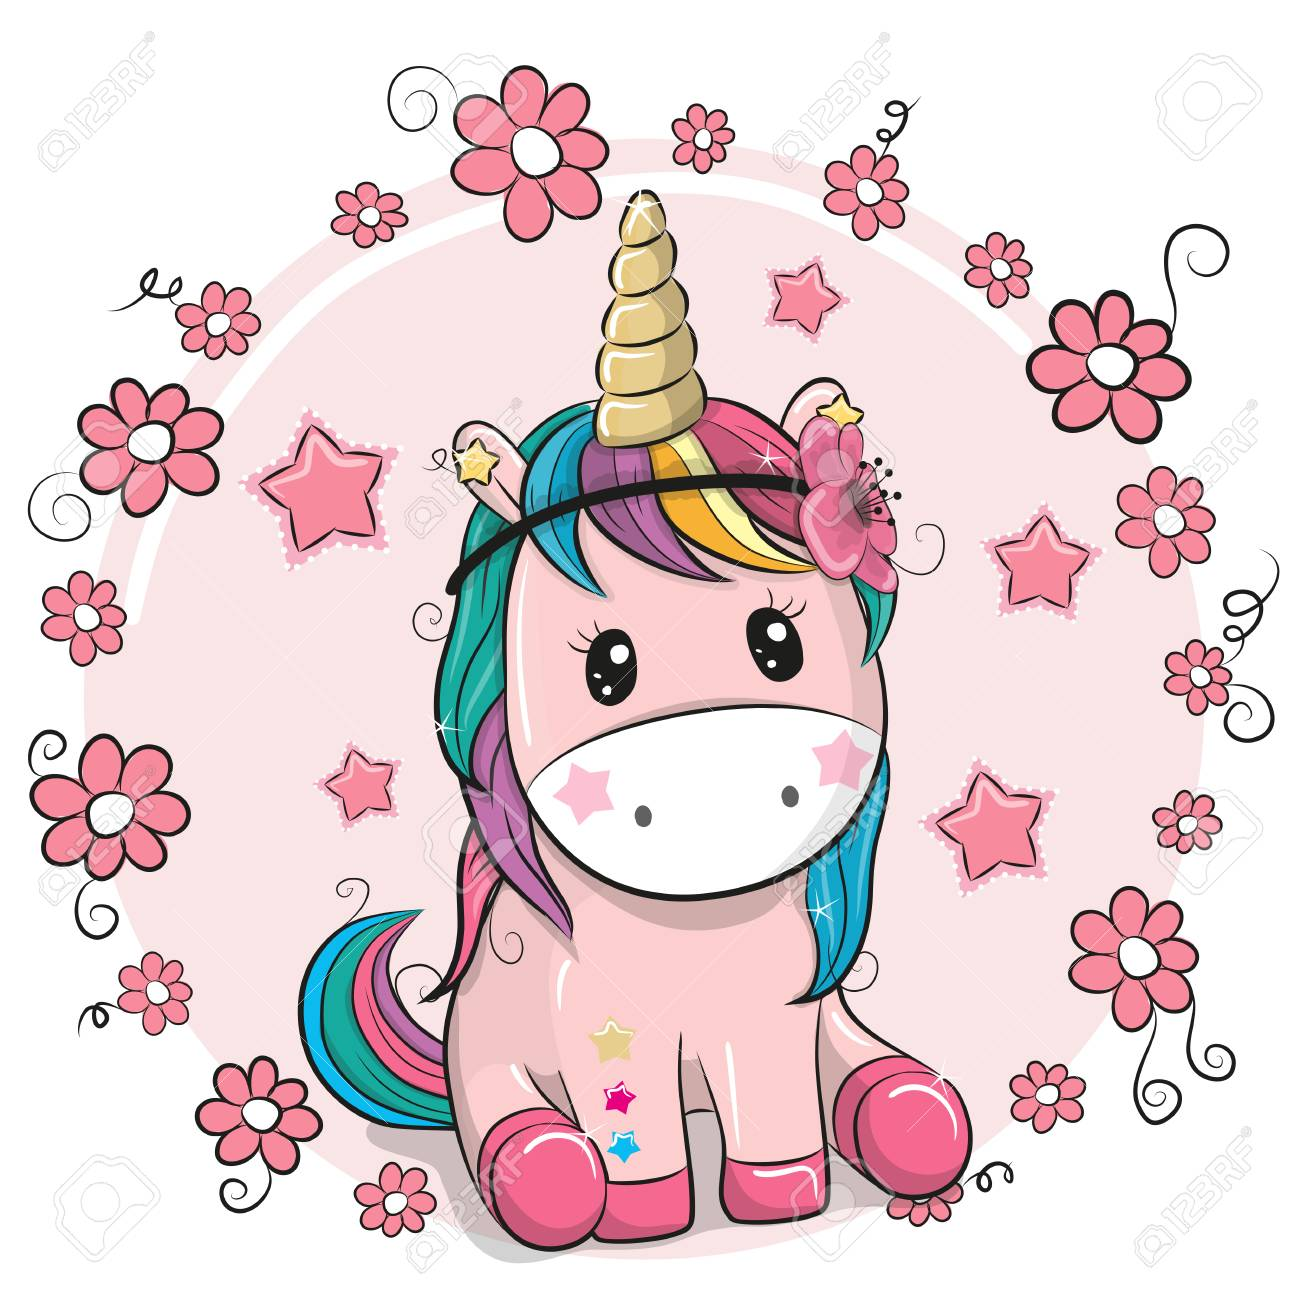 Greeting Card Cute Cartoon Unicorn With Flowers On A Pink Background